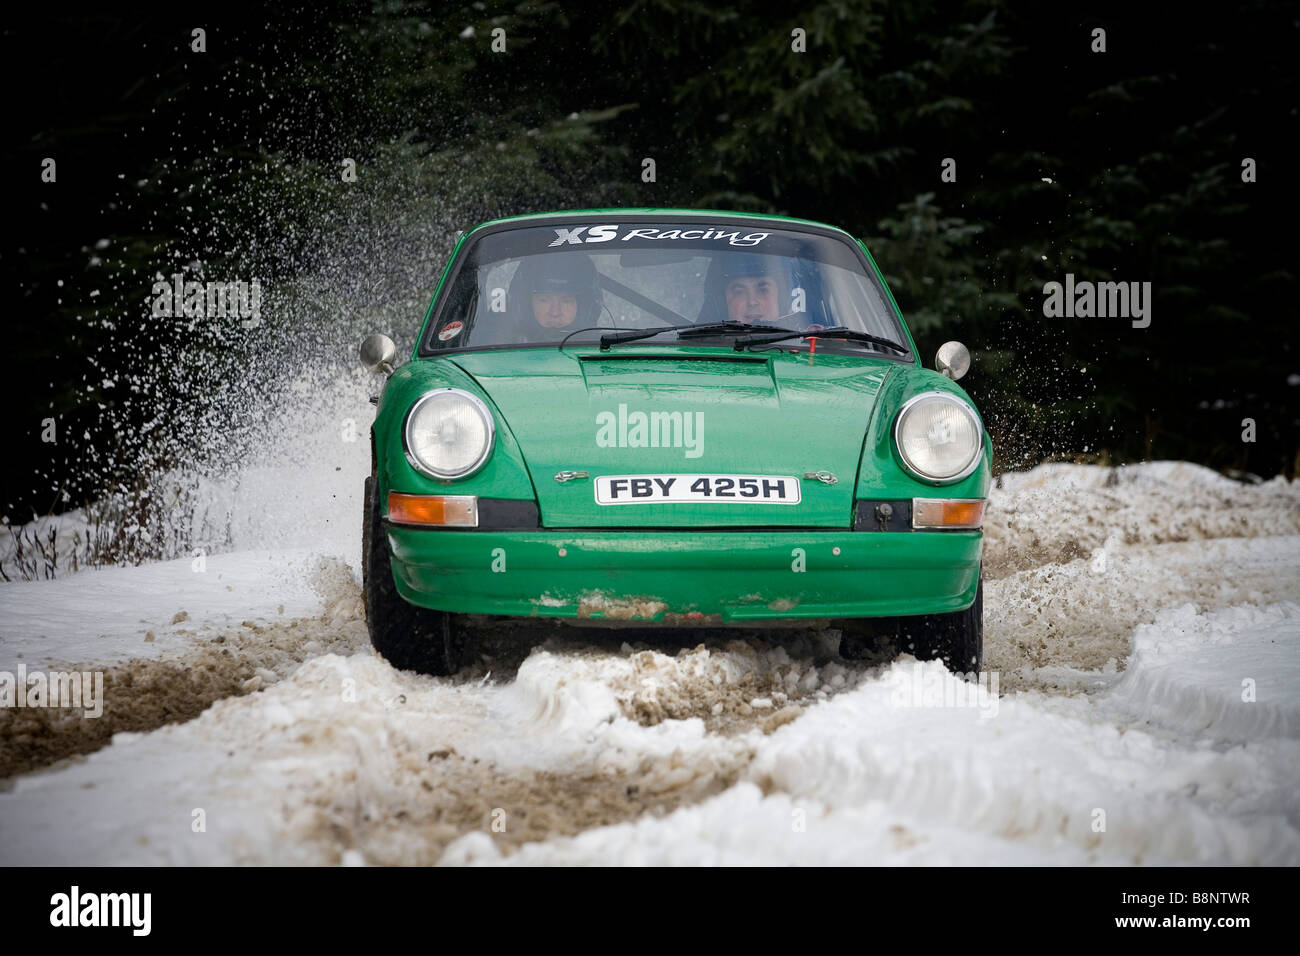 porsche 911 rally car in stock photos porsche 911 rally car in stock images alamy. Black Bedroom Furniture Sets. Home Design Ideas